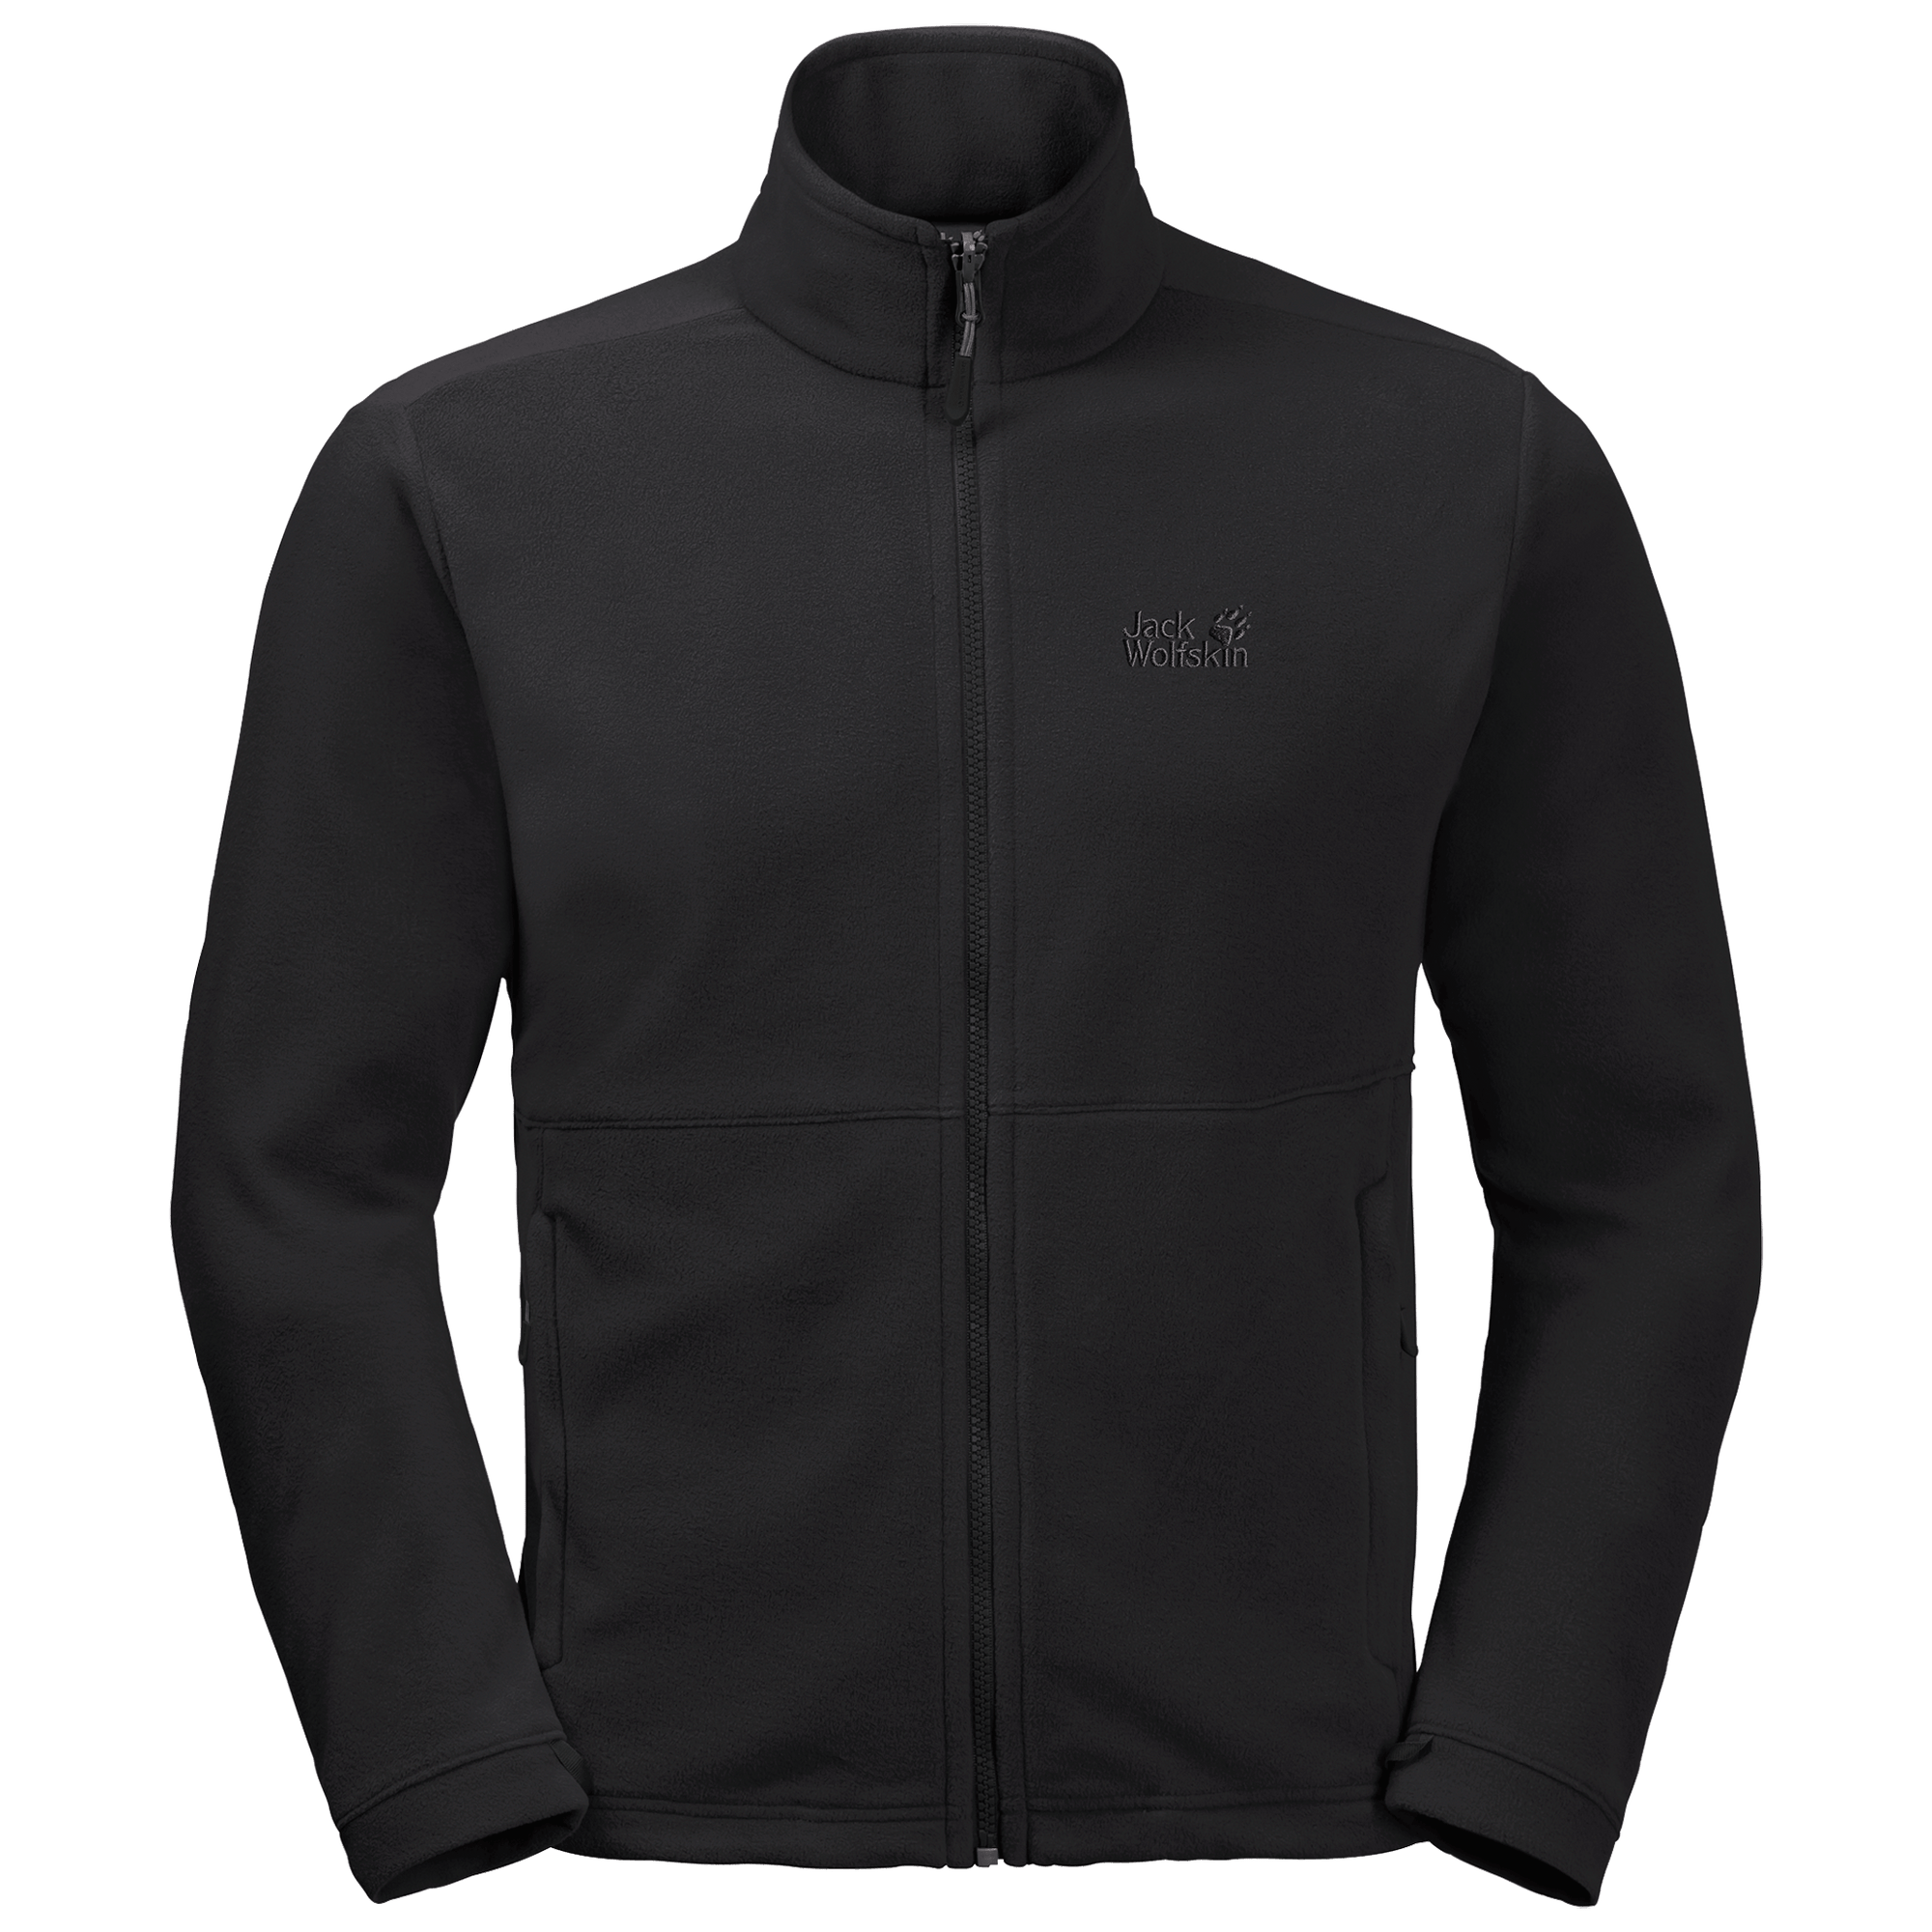 9f2ed59f934 Jack Wolfskin - Men's KIRUNA JACKET - Black - Recycled Polyester -  Weekendbee - sustainable sportswear